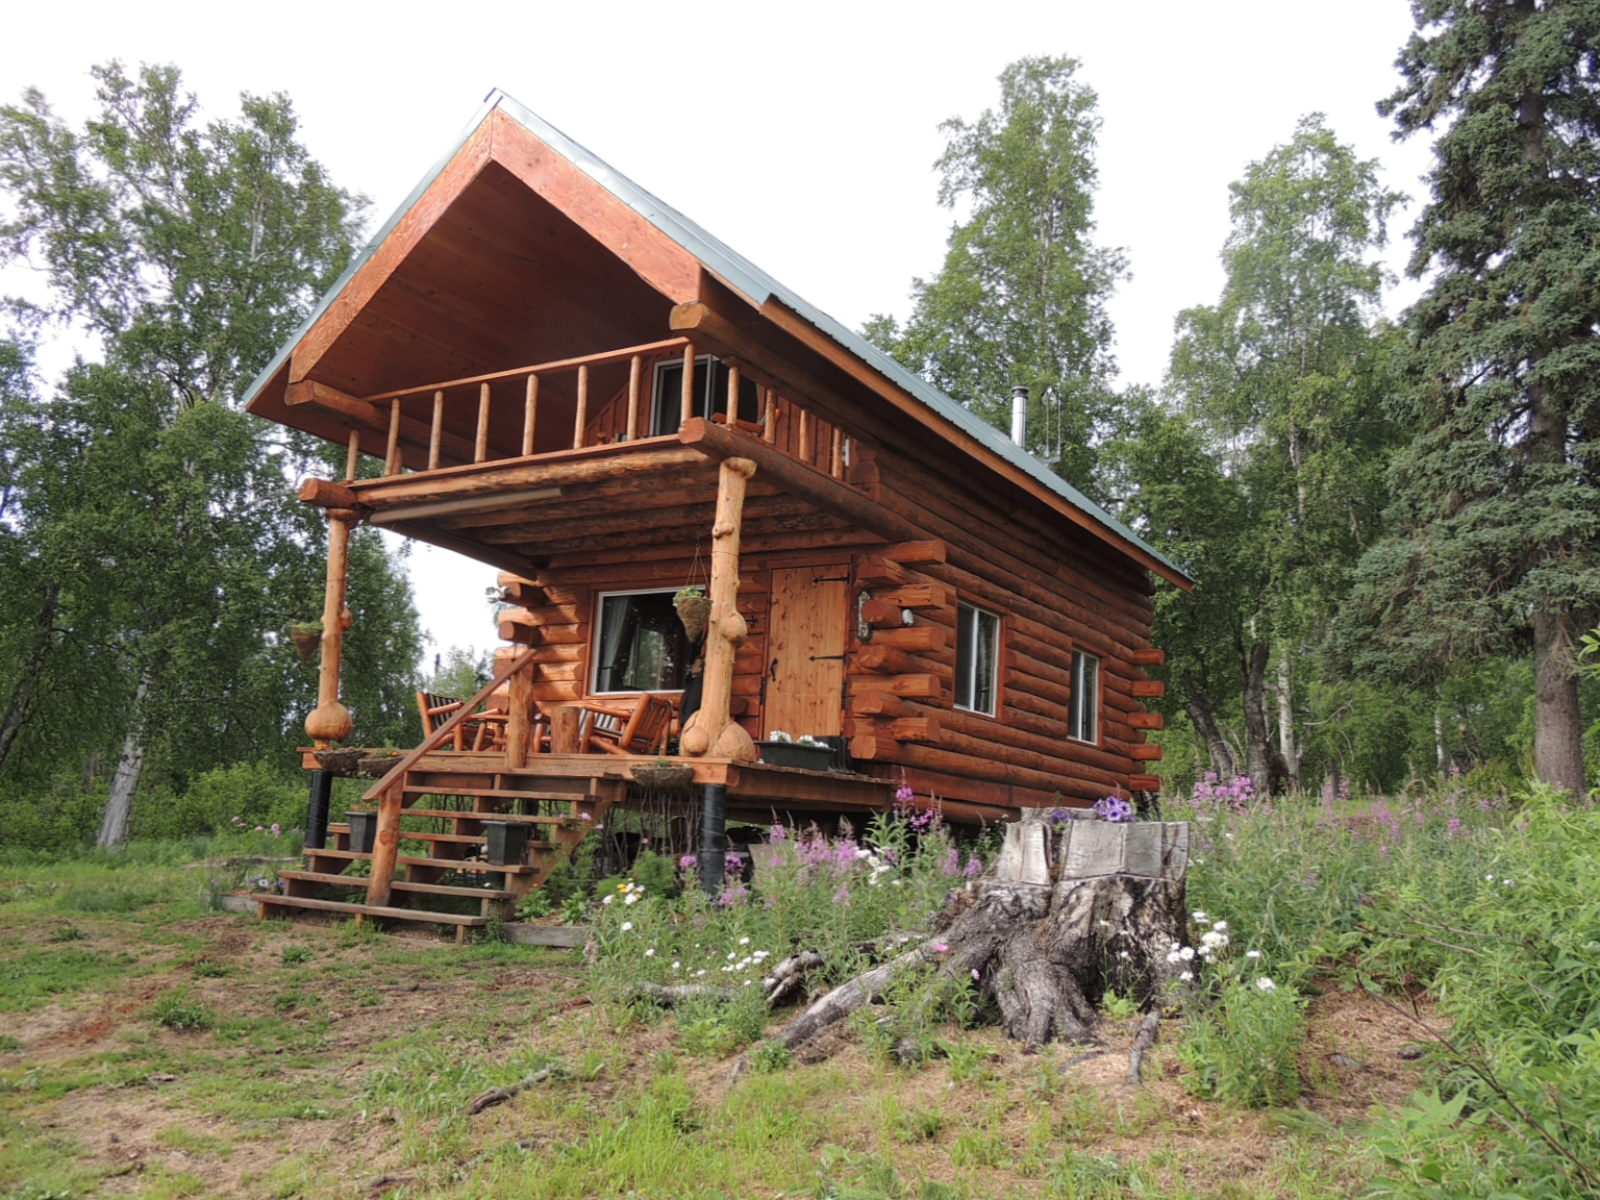 Alaska bush life off road off grid want to buy a remote for Alaska cottage